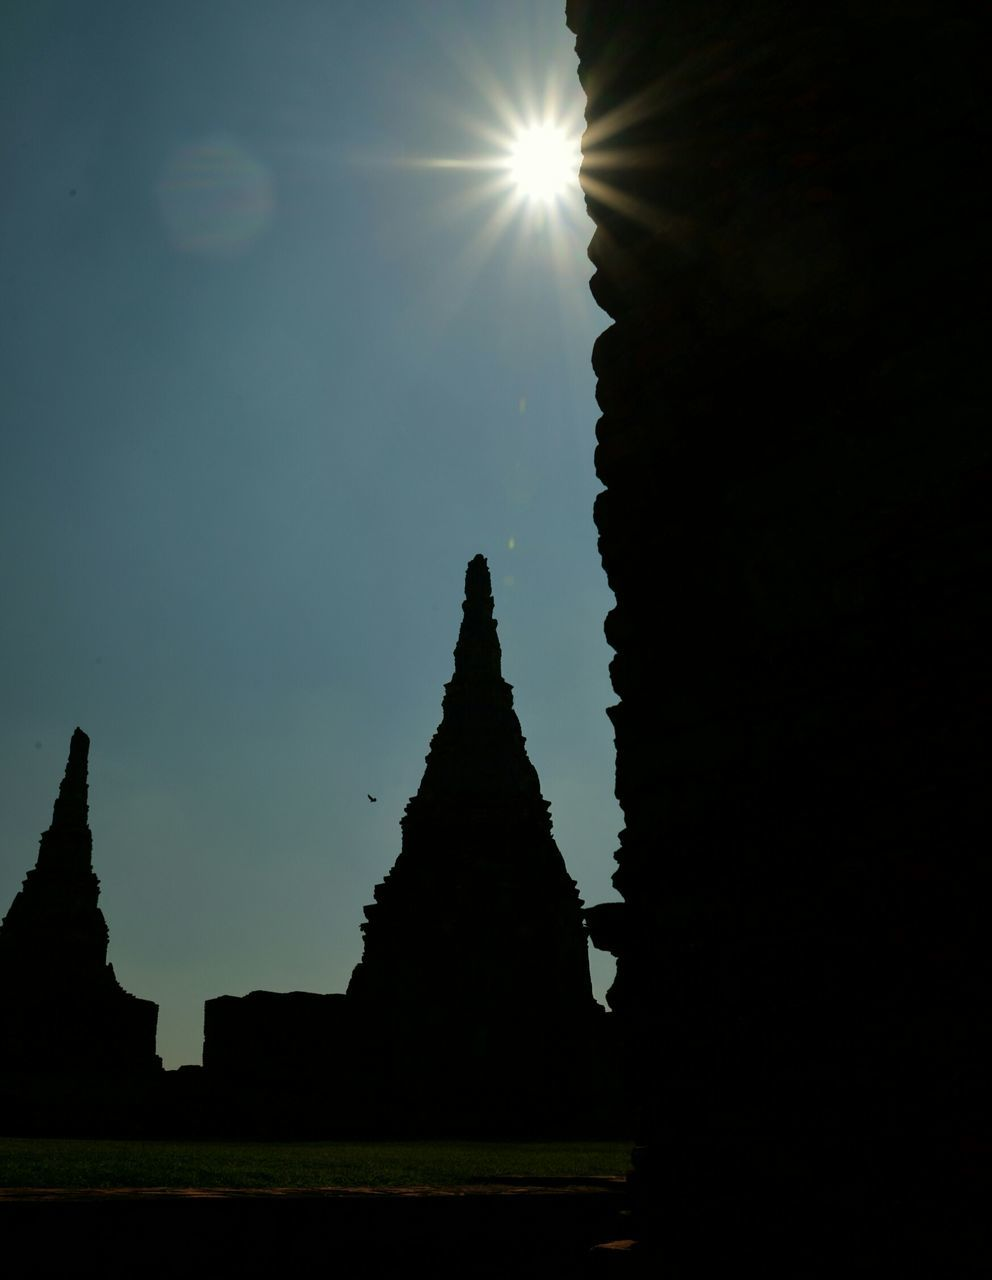 Silhouette Temples Against Clear Sky